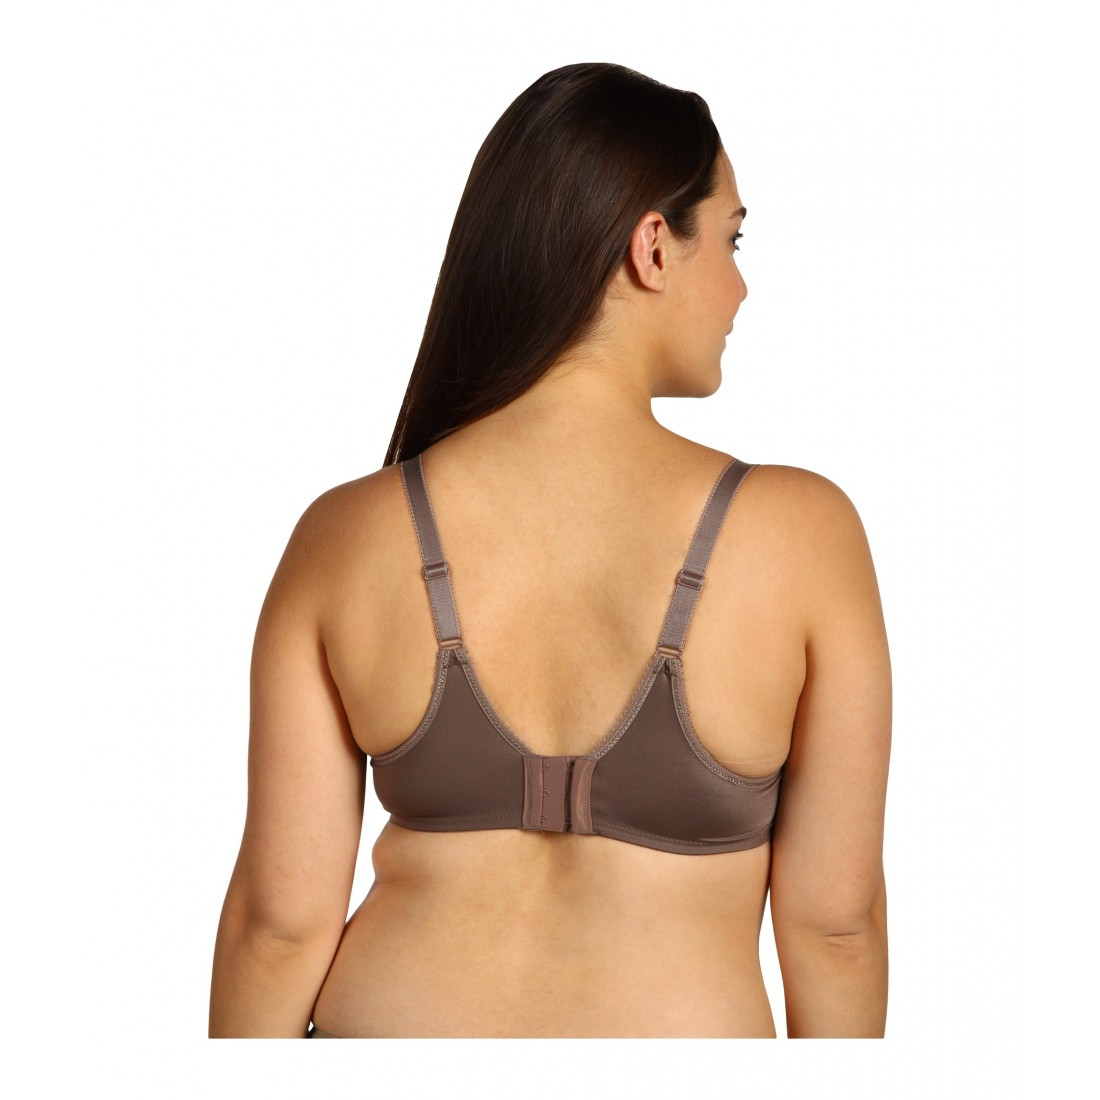 25c47233b0c Wacoal Basic Beauty Full Figure Underwire Bra 855192 ZPSKU 7900208  Cappuccino